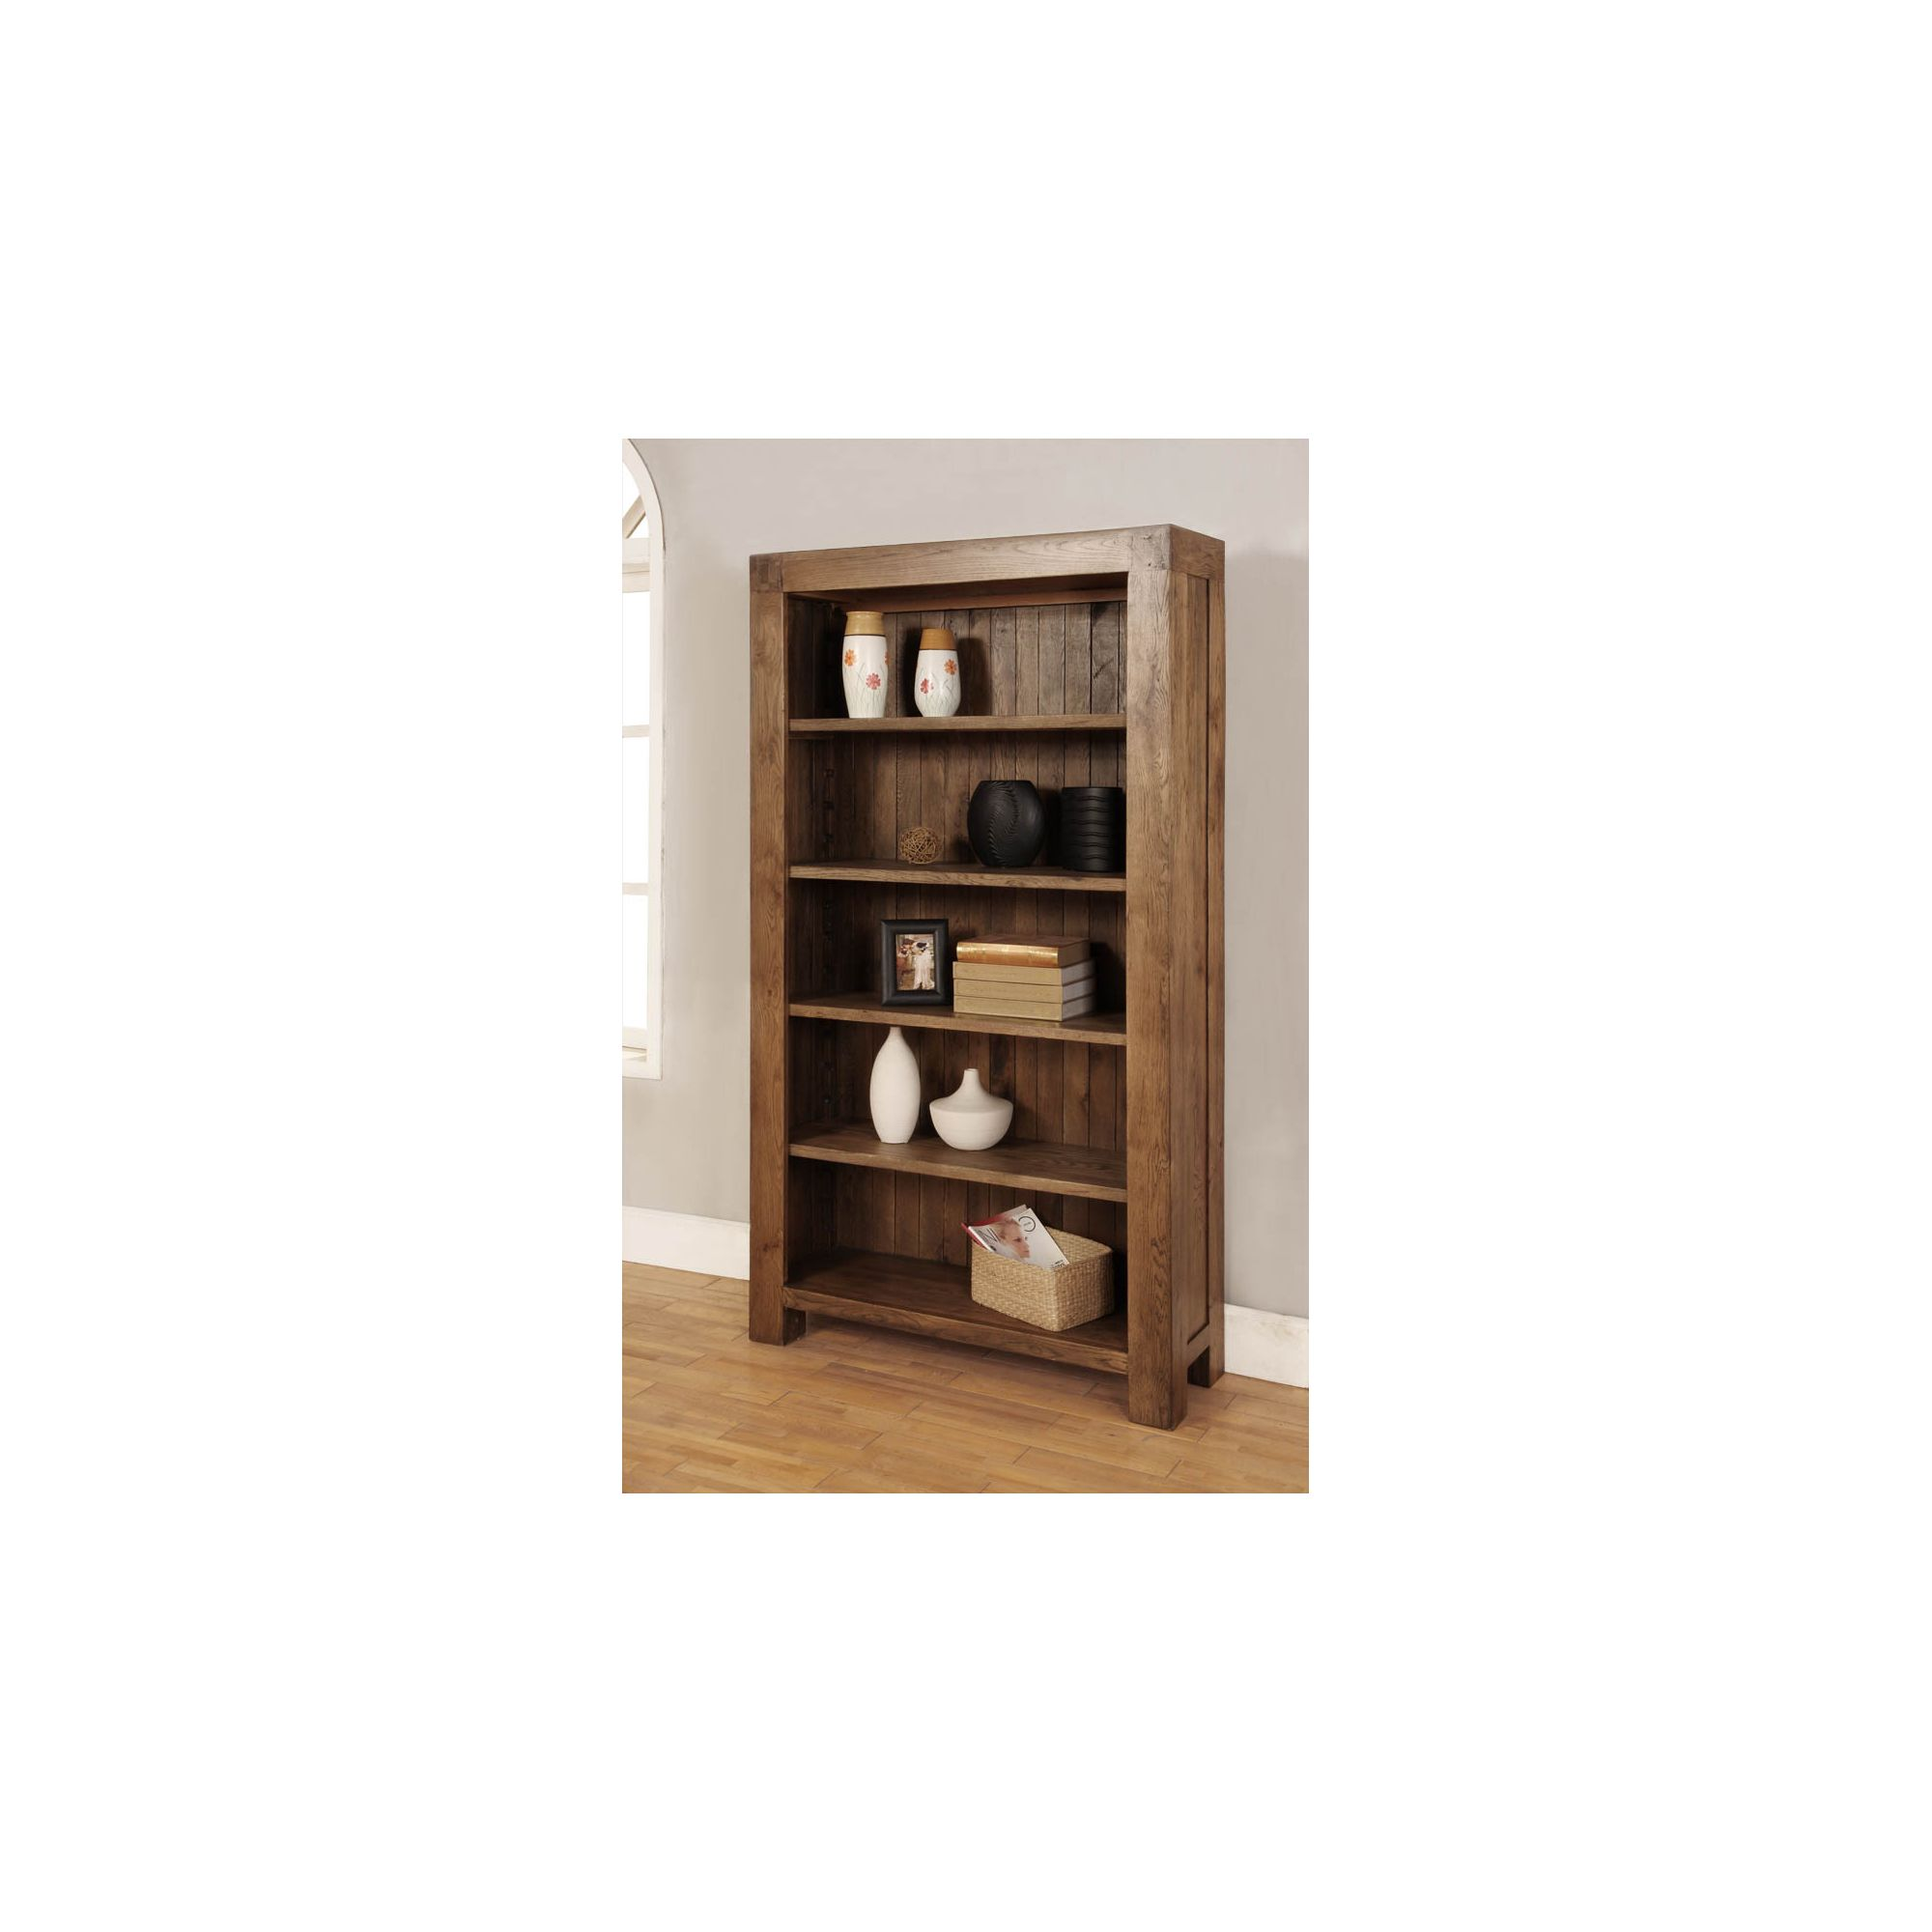 Hawkshead Santana Four Adjustable Shelves Bookcase in Rich Patina at Tesco Direct